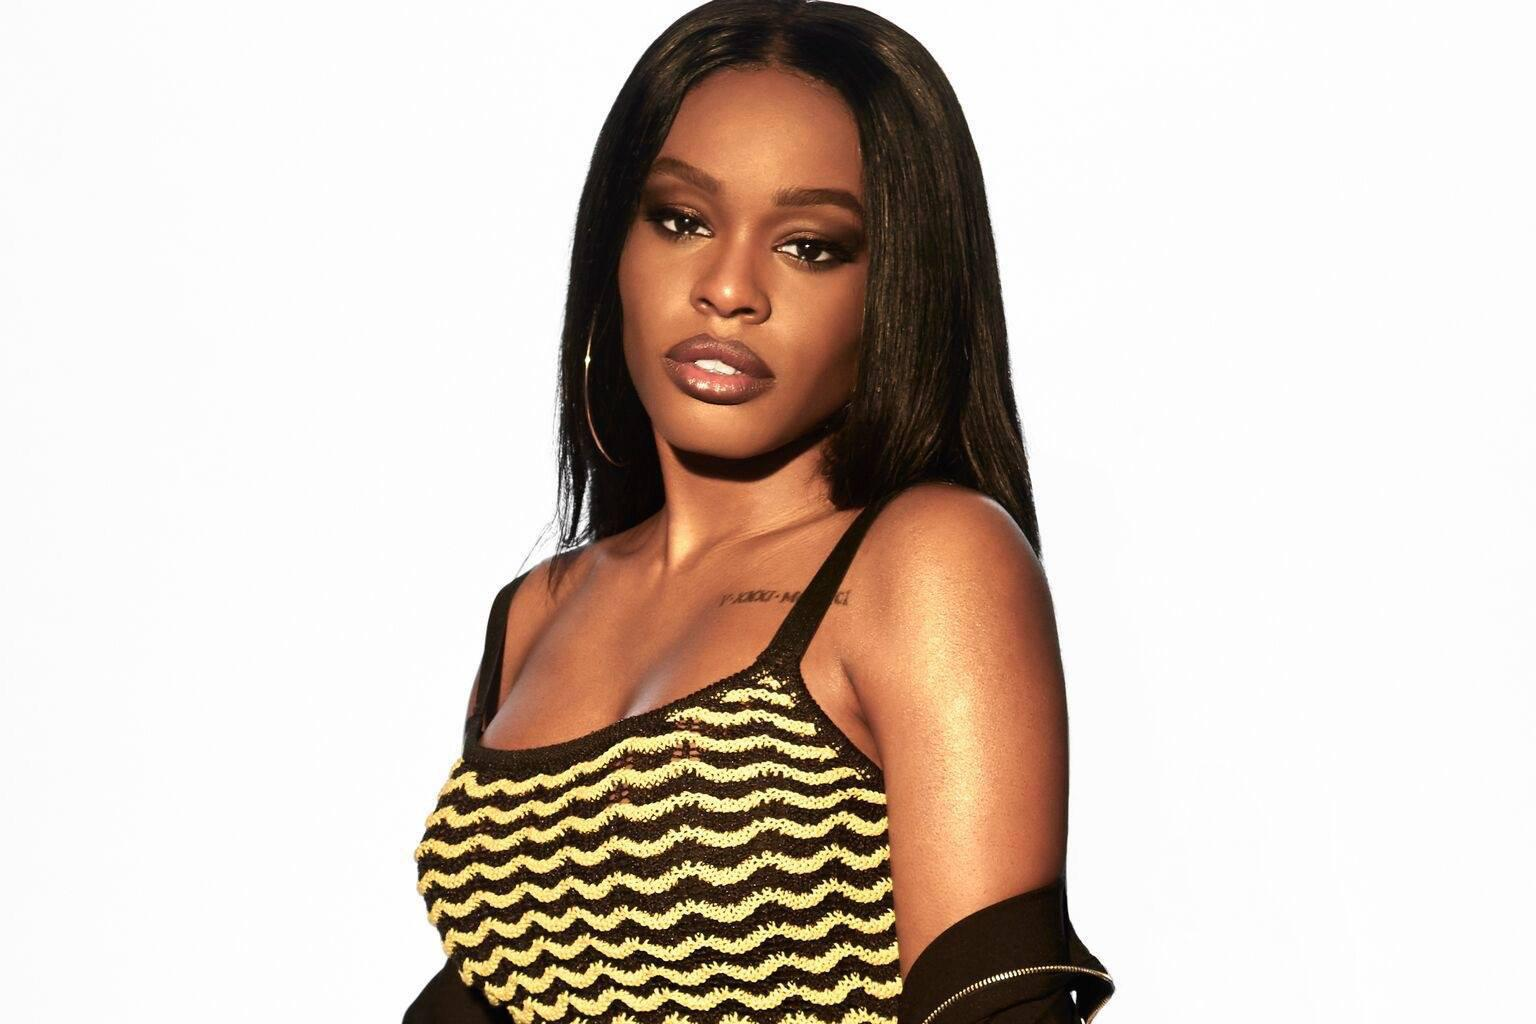 Azealia Banks Cries And Slams Irish Women As 'Ugly' During Video After Being Banned From Airline